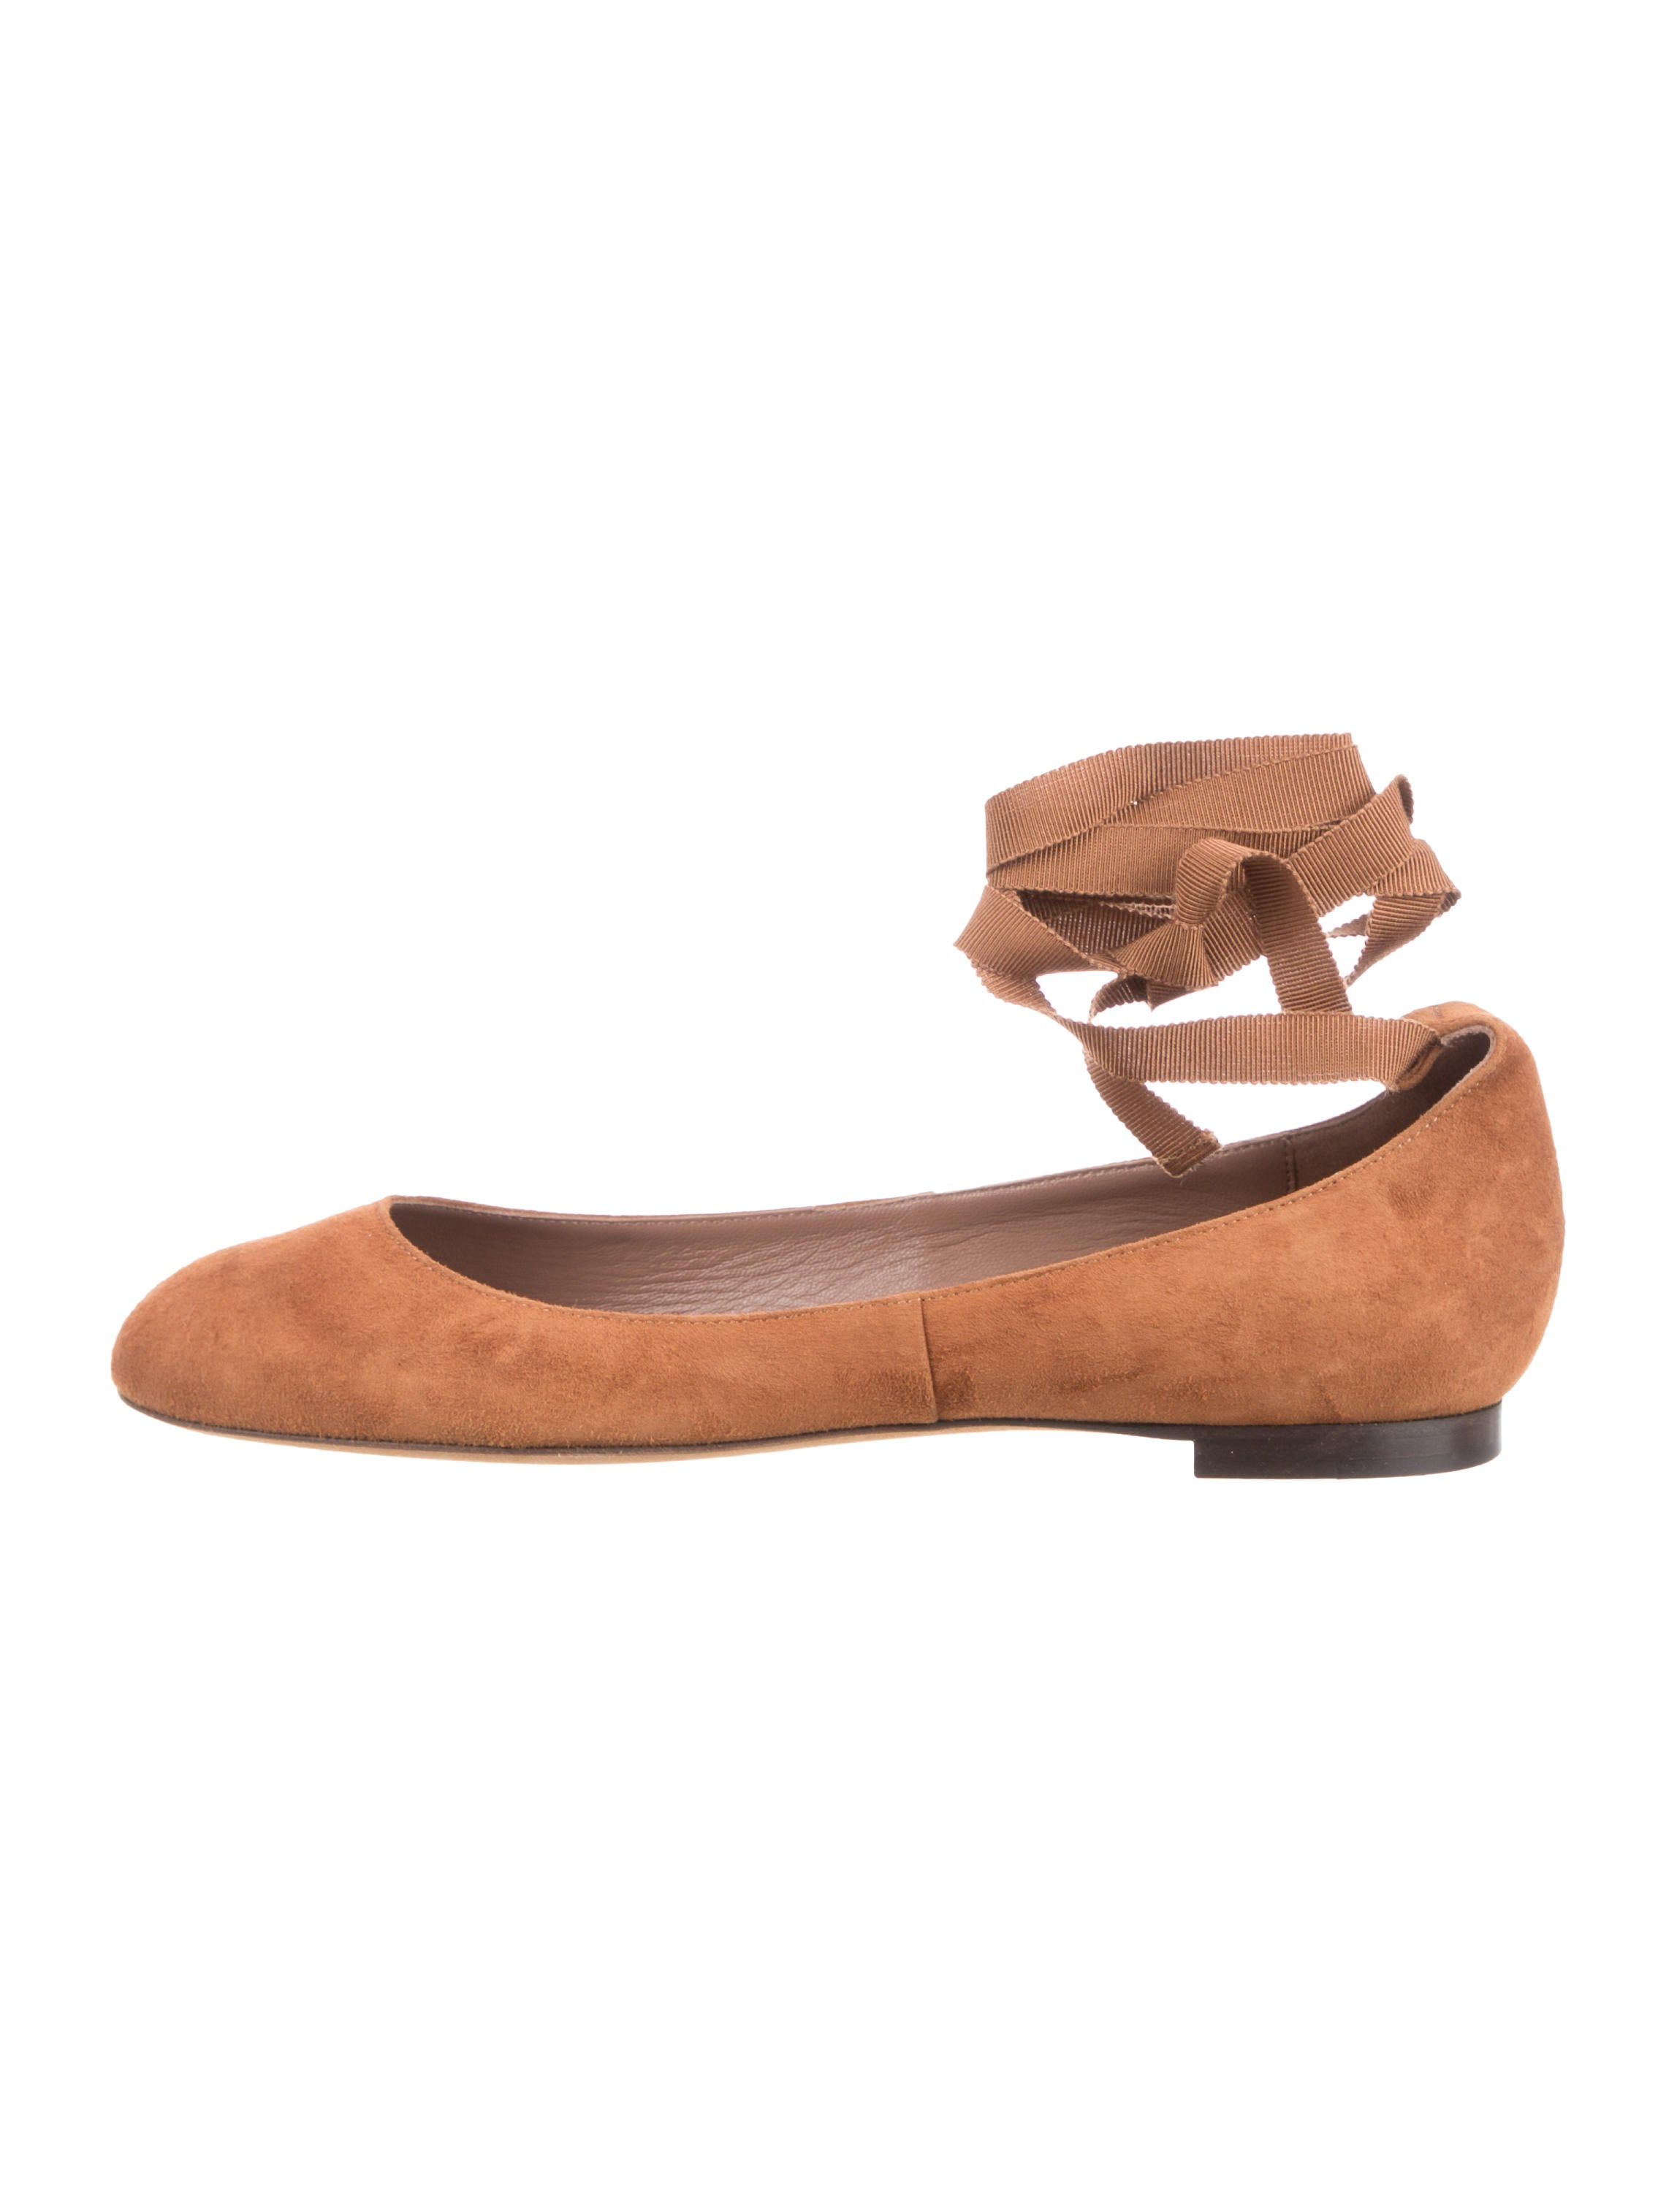 Tabitha Simmons Daria Suede Flats w/ Tags quality for sale free shipping largest supplier sale online cost cheap price clearance websites free shipping online 3zG5rQO